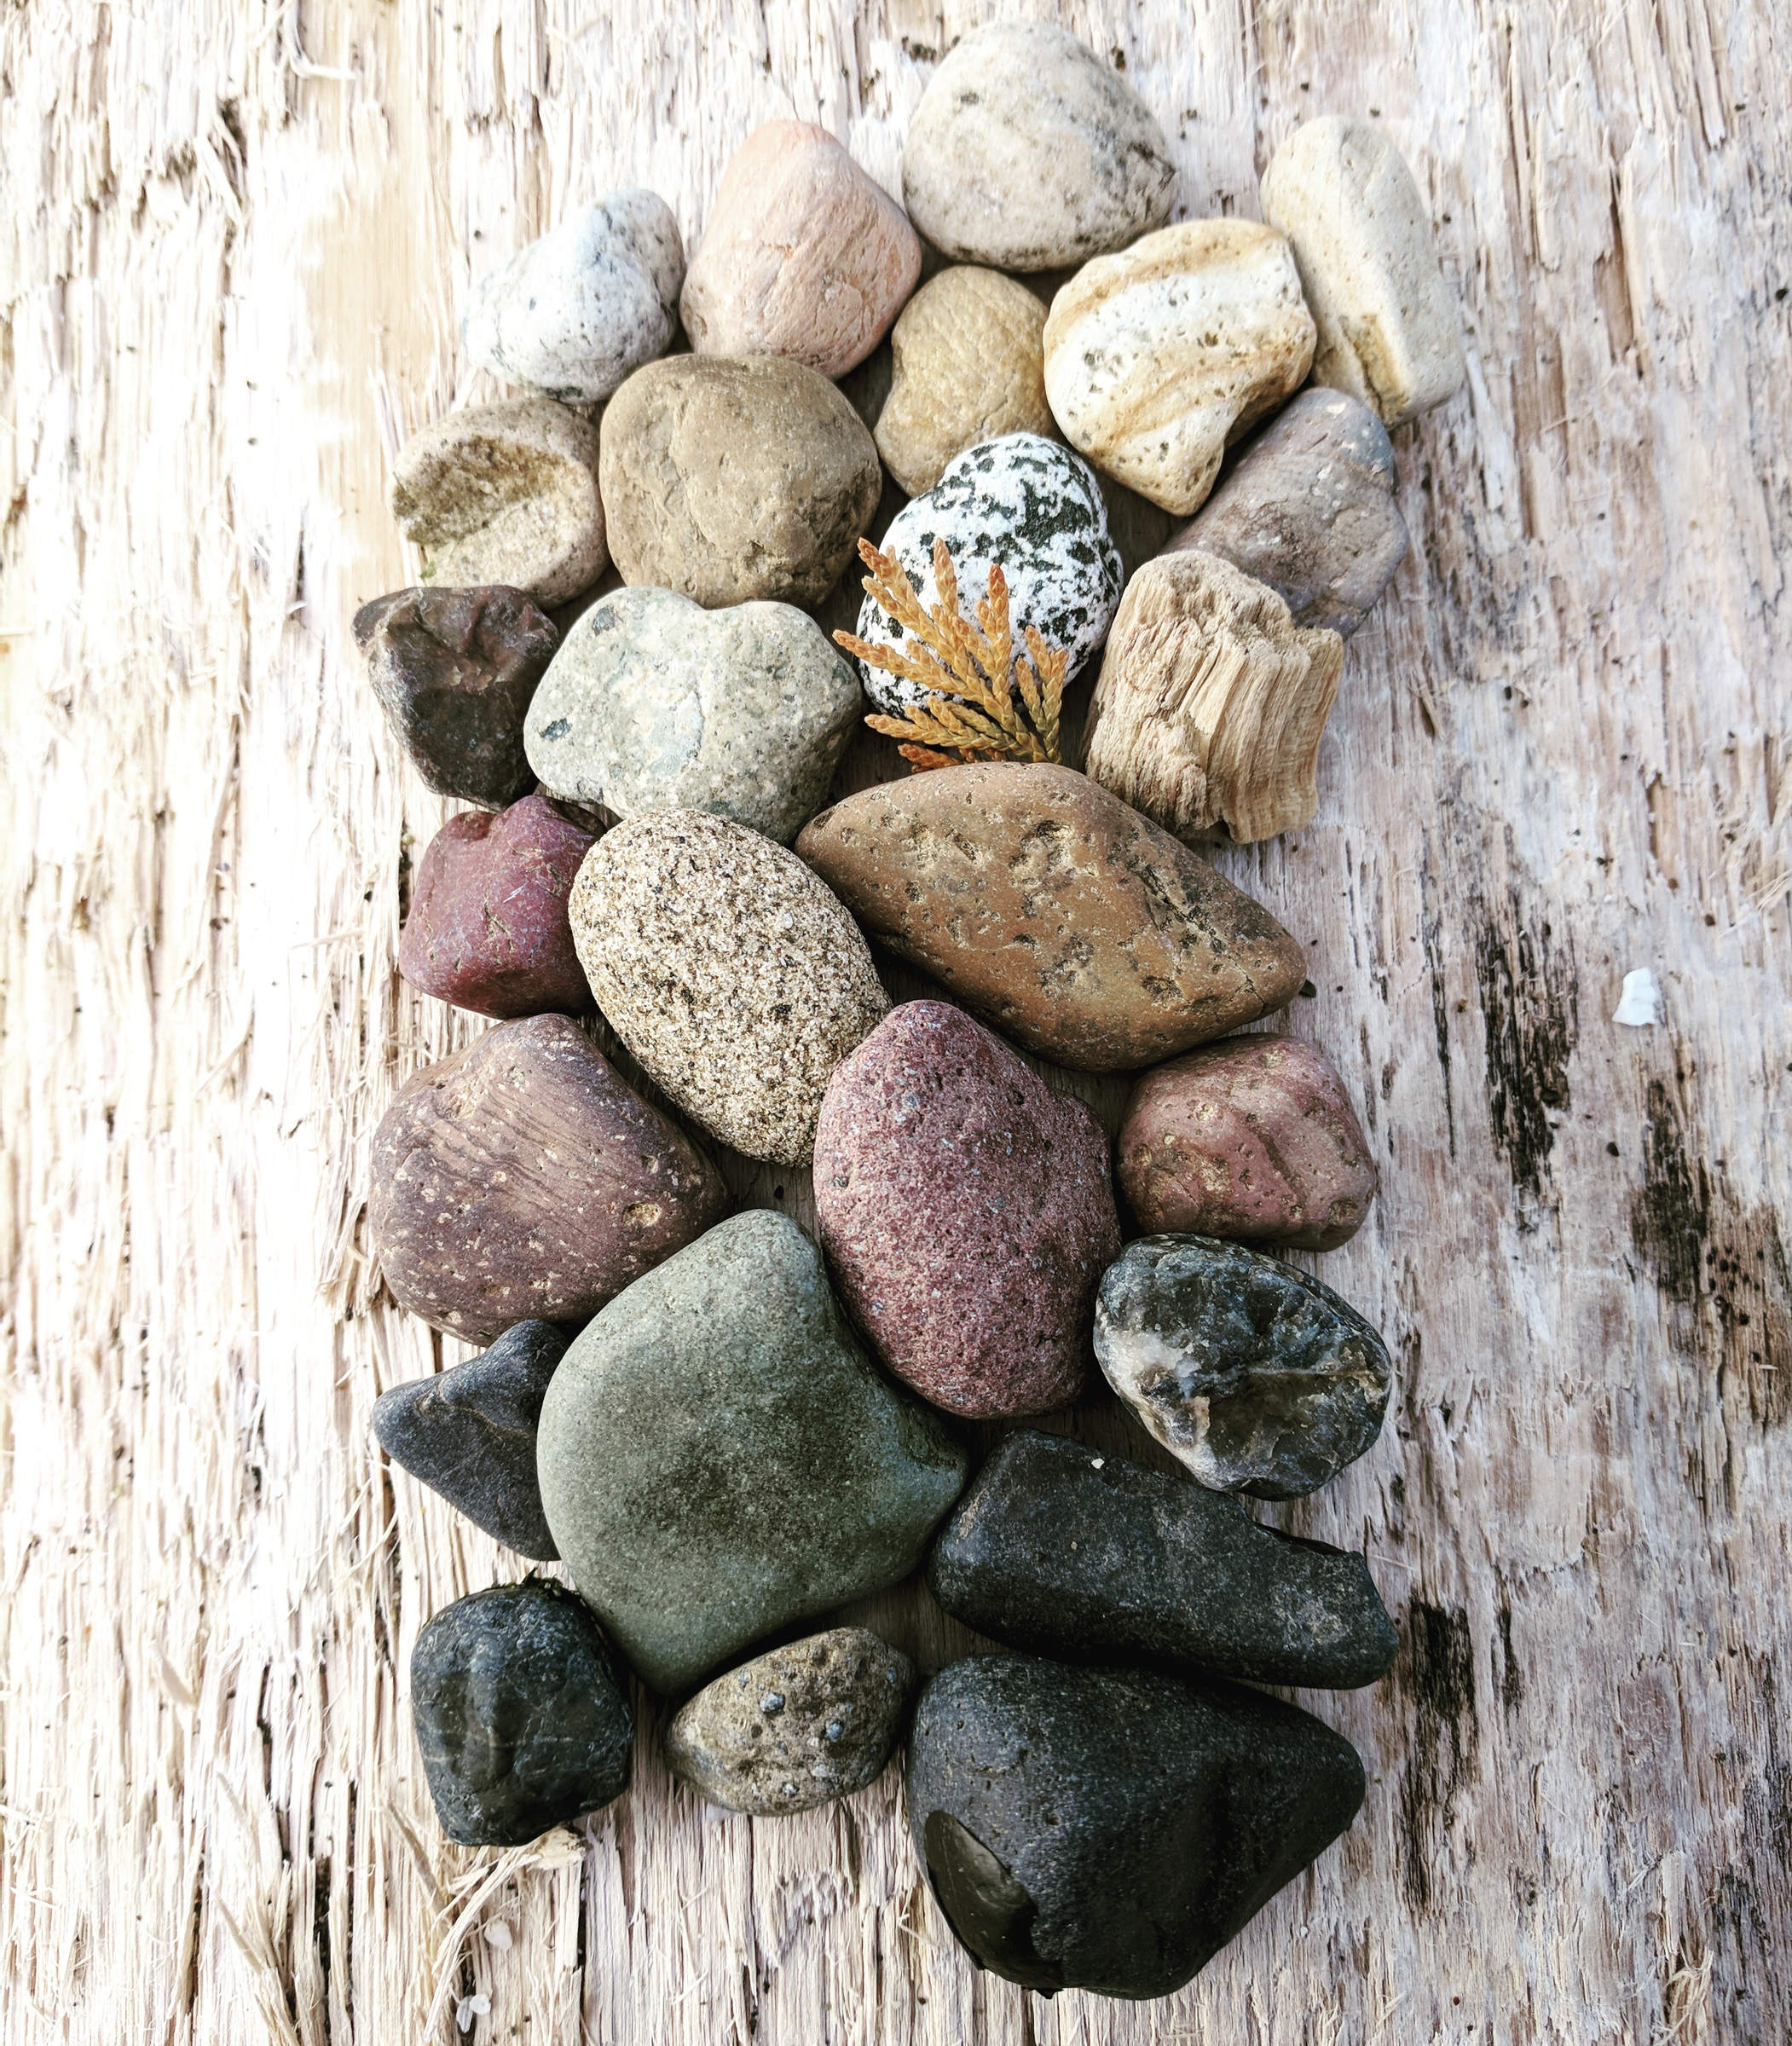 Colorful tumbled rocks artfully arranged on a piece of driftwood on the beach in winter.